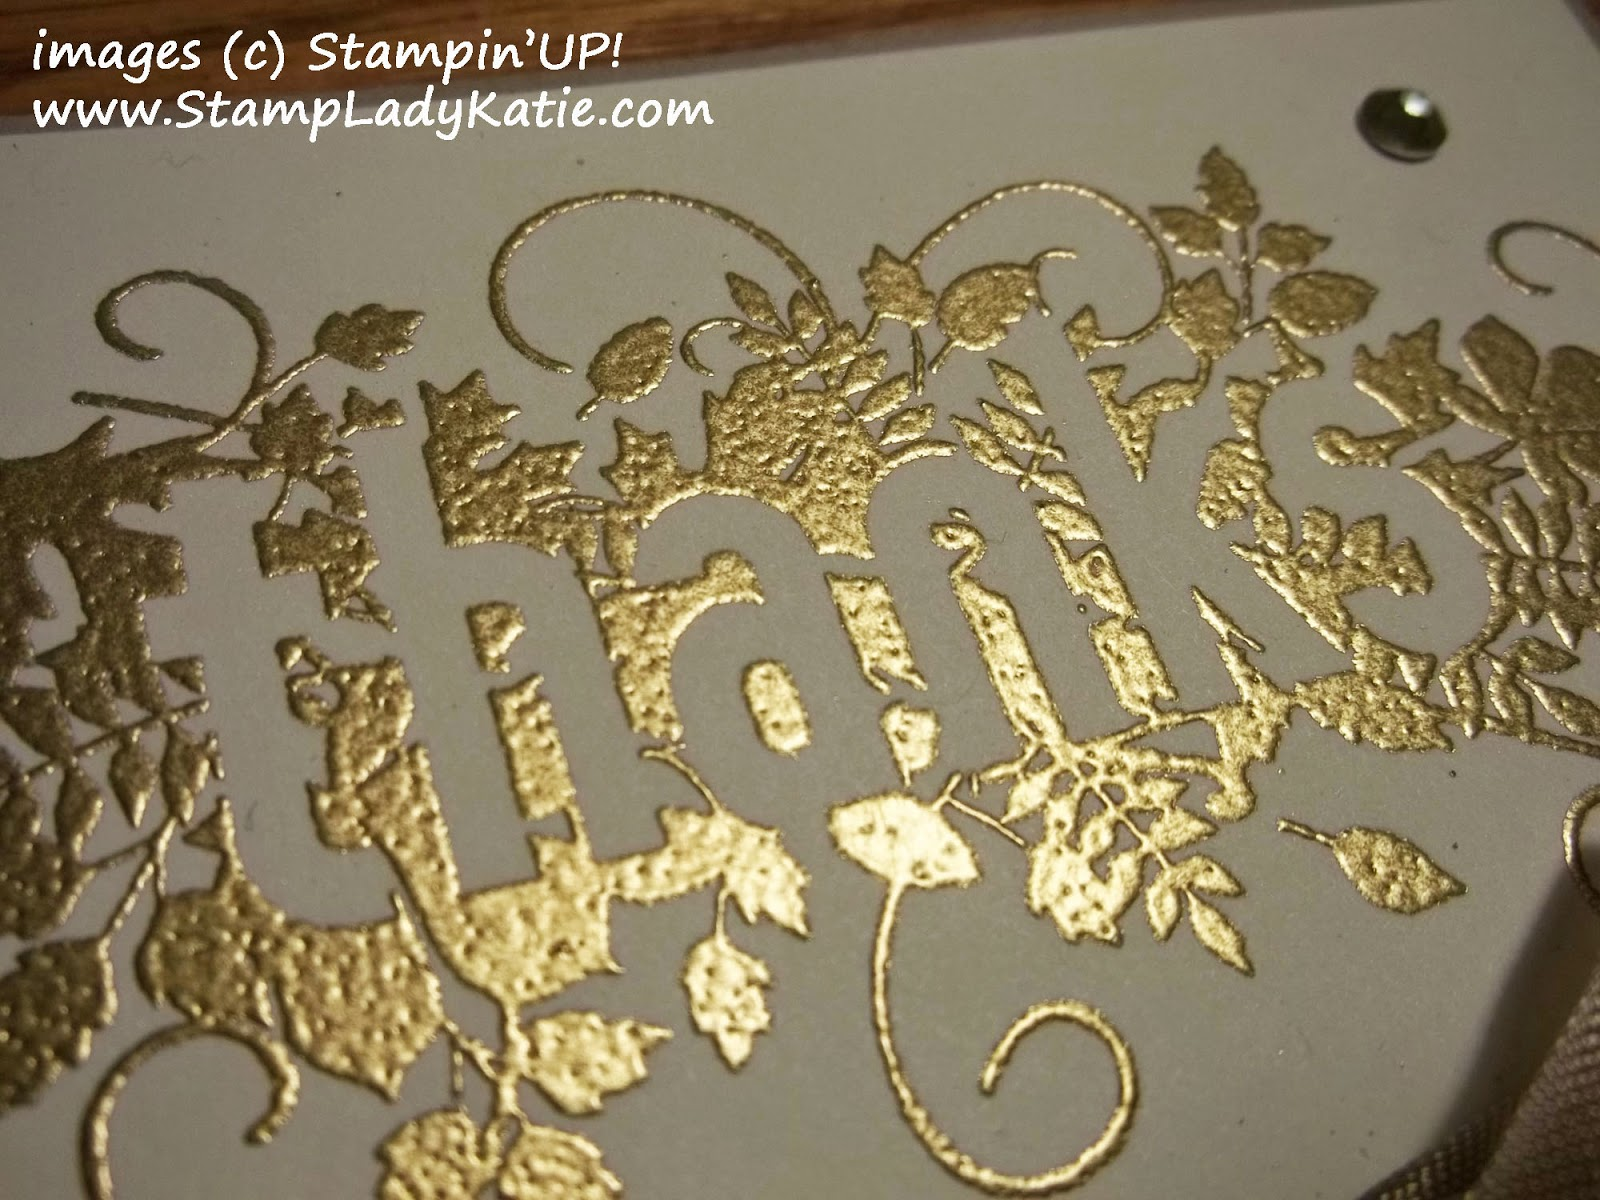 Gold embossed image from Stampin'UP!'s Seasonally Scattered stamp set.